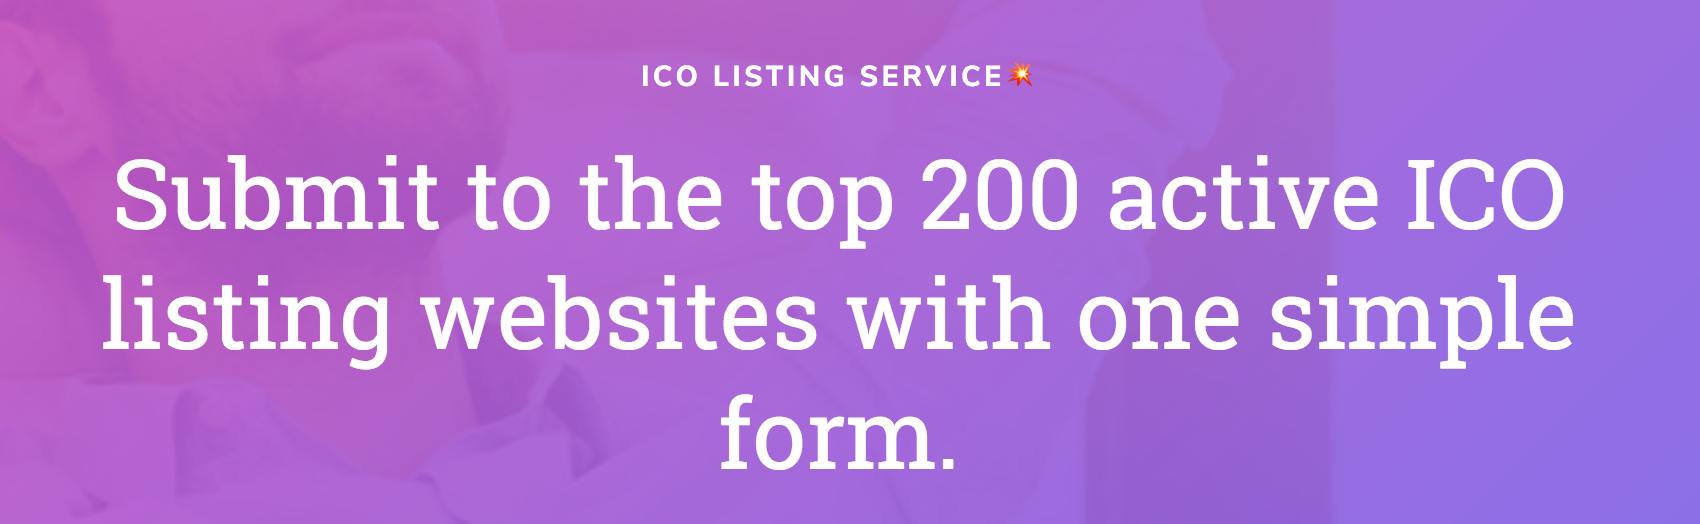 ico marketing listing sites